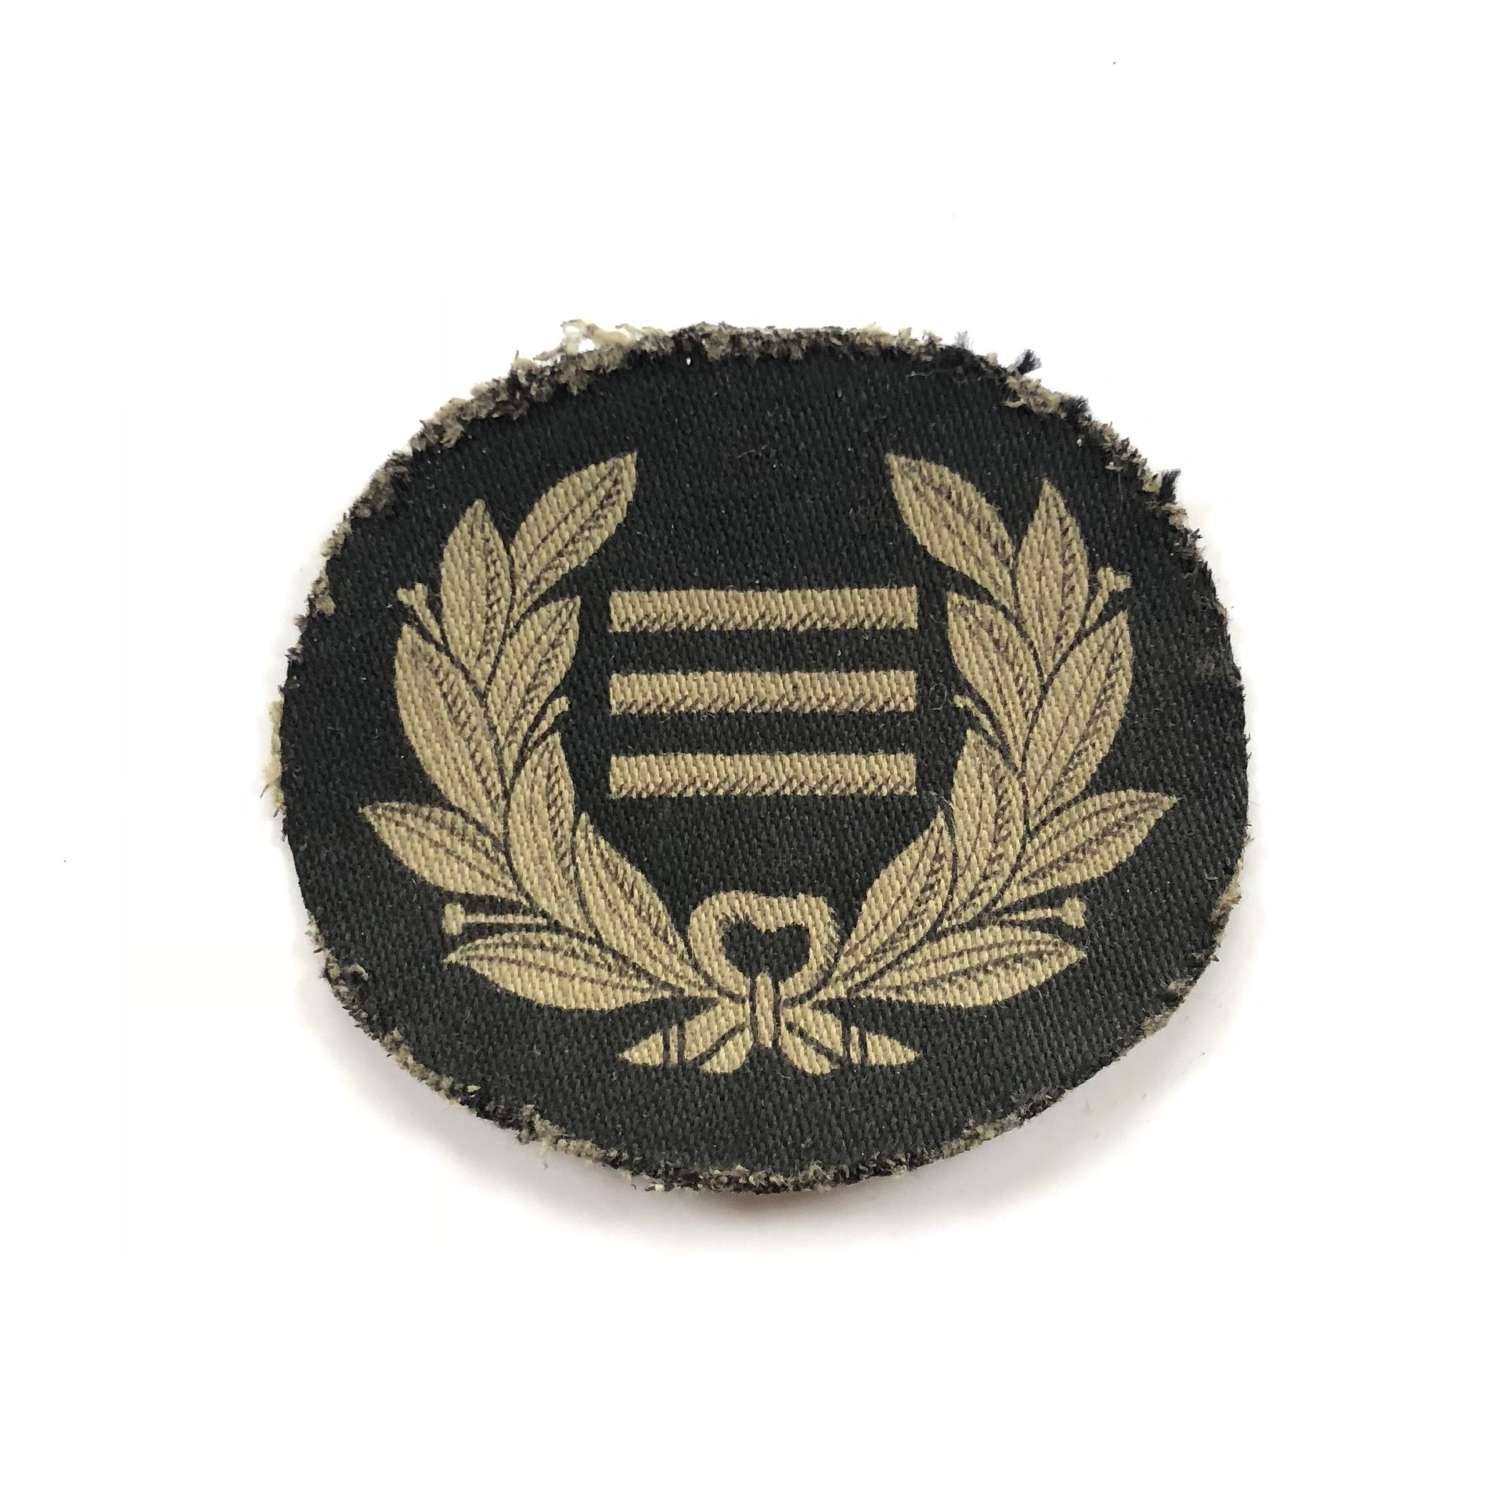 WW2 Observer Corps Chief Observer Printed Badge.